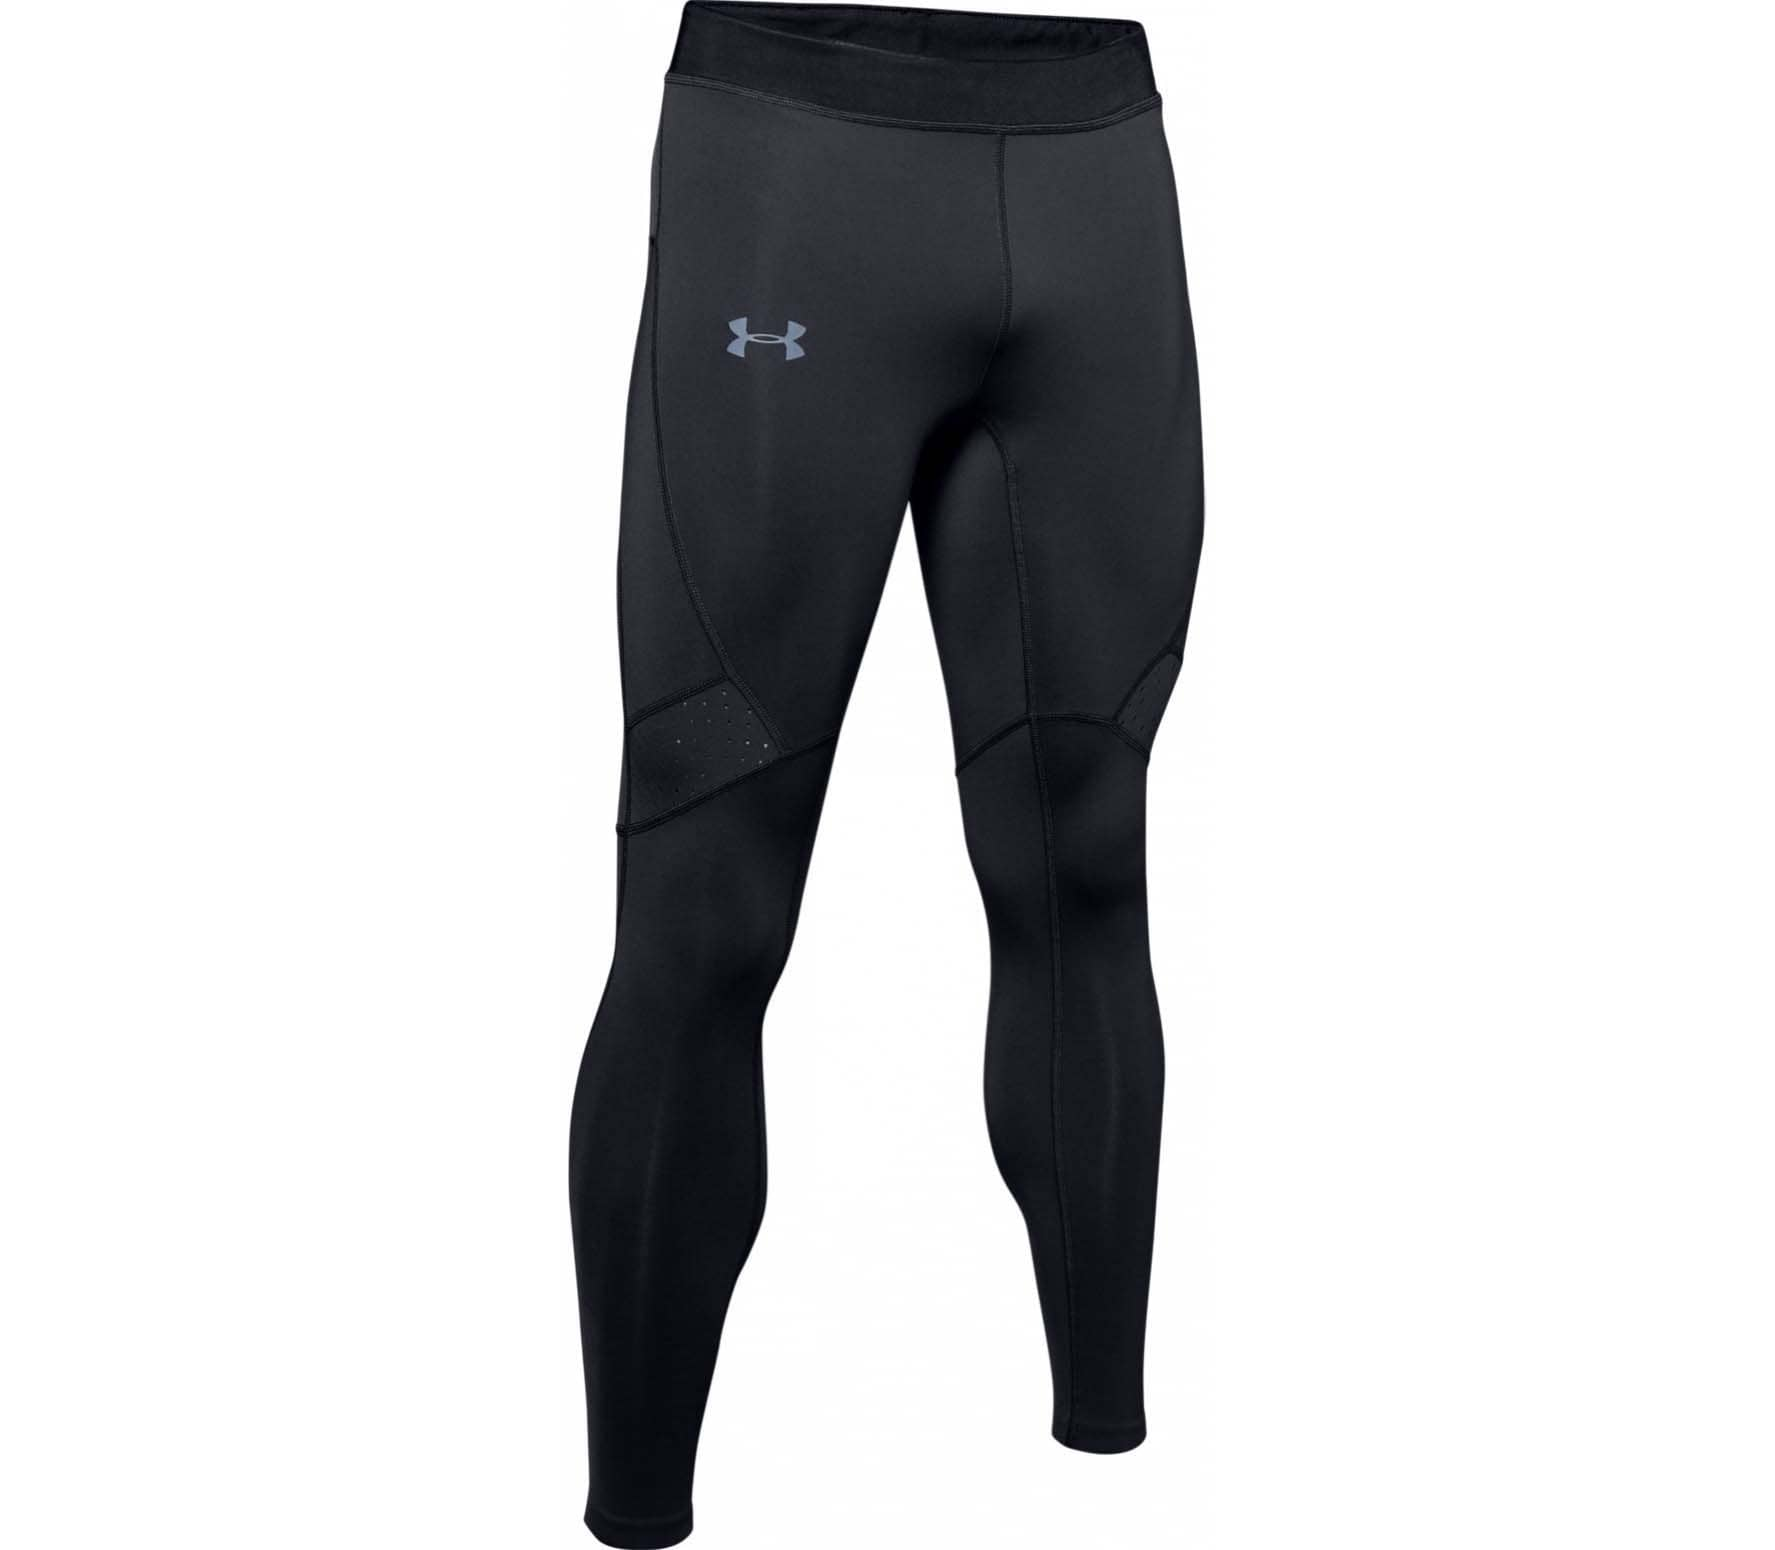 Qualifier Coldgear Men Running Tights